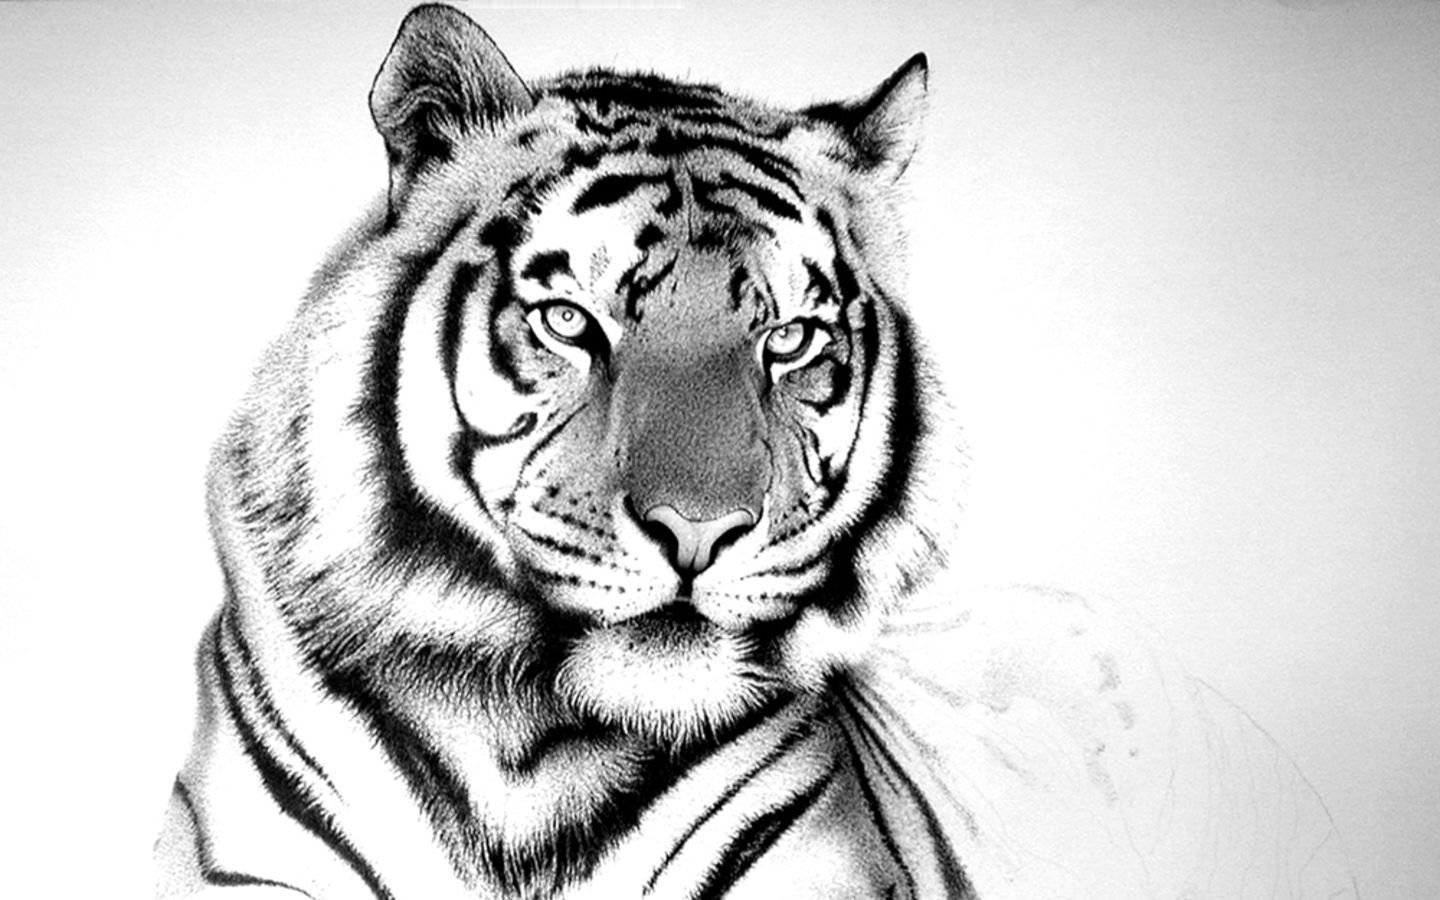 10 Top Black And White Tiger Wallpaper Full Hd 1920 1080 For Pc